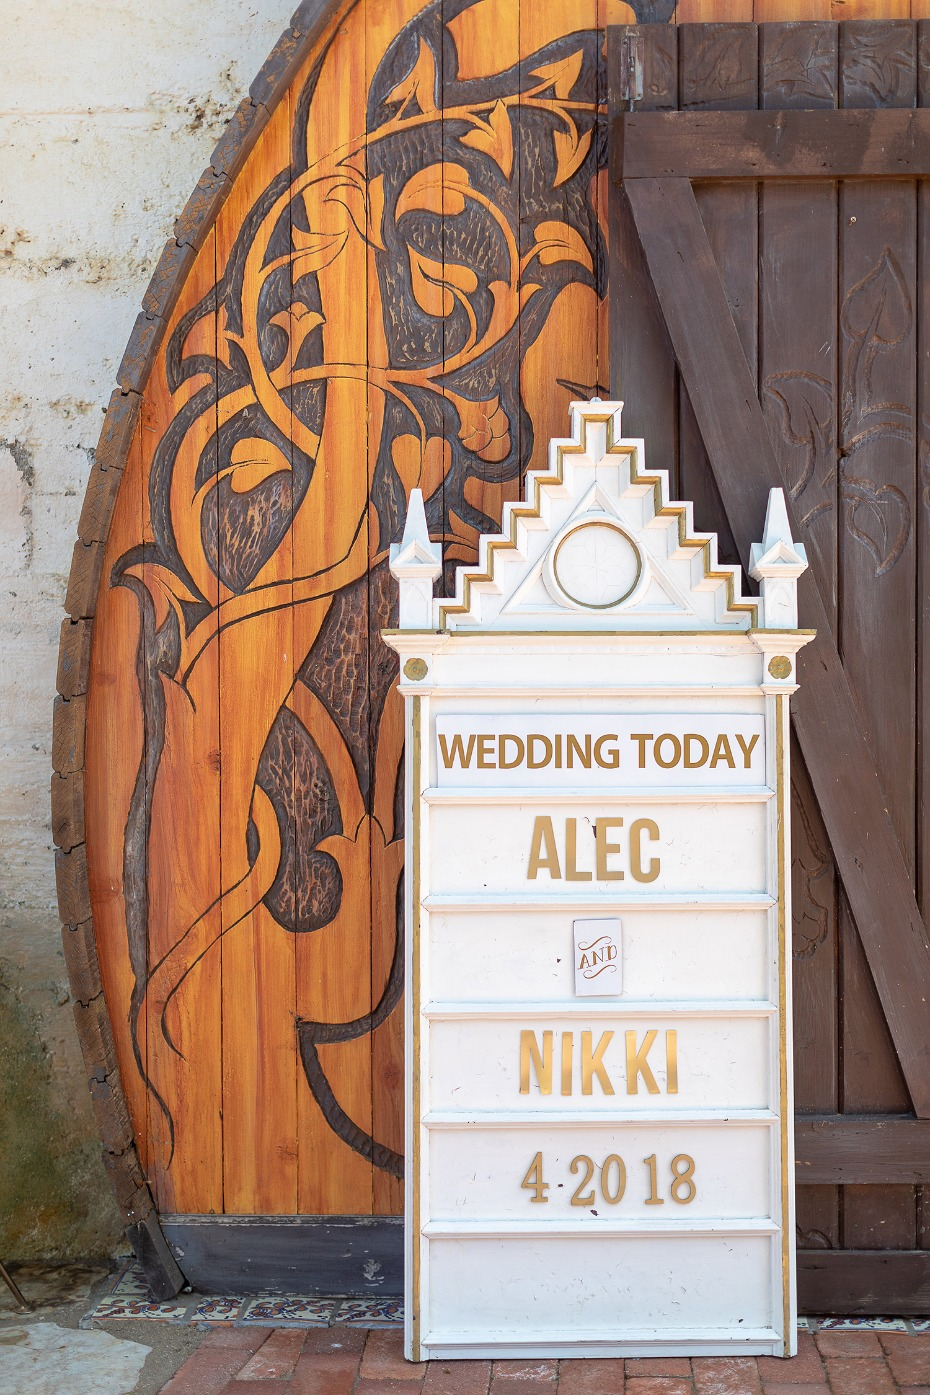 Cool wedding sign